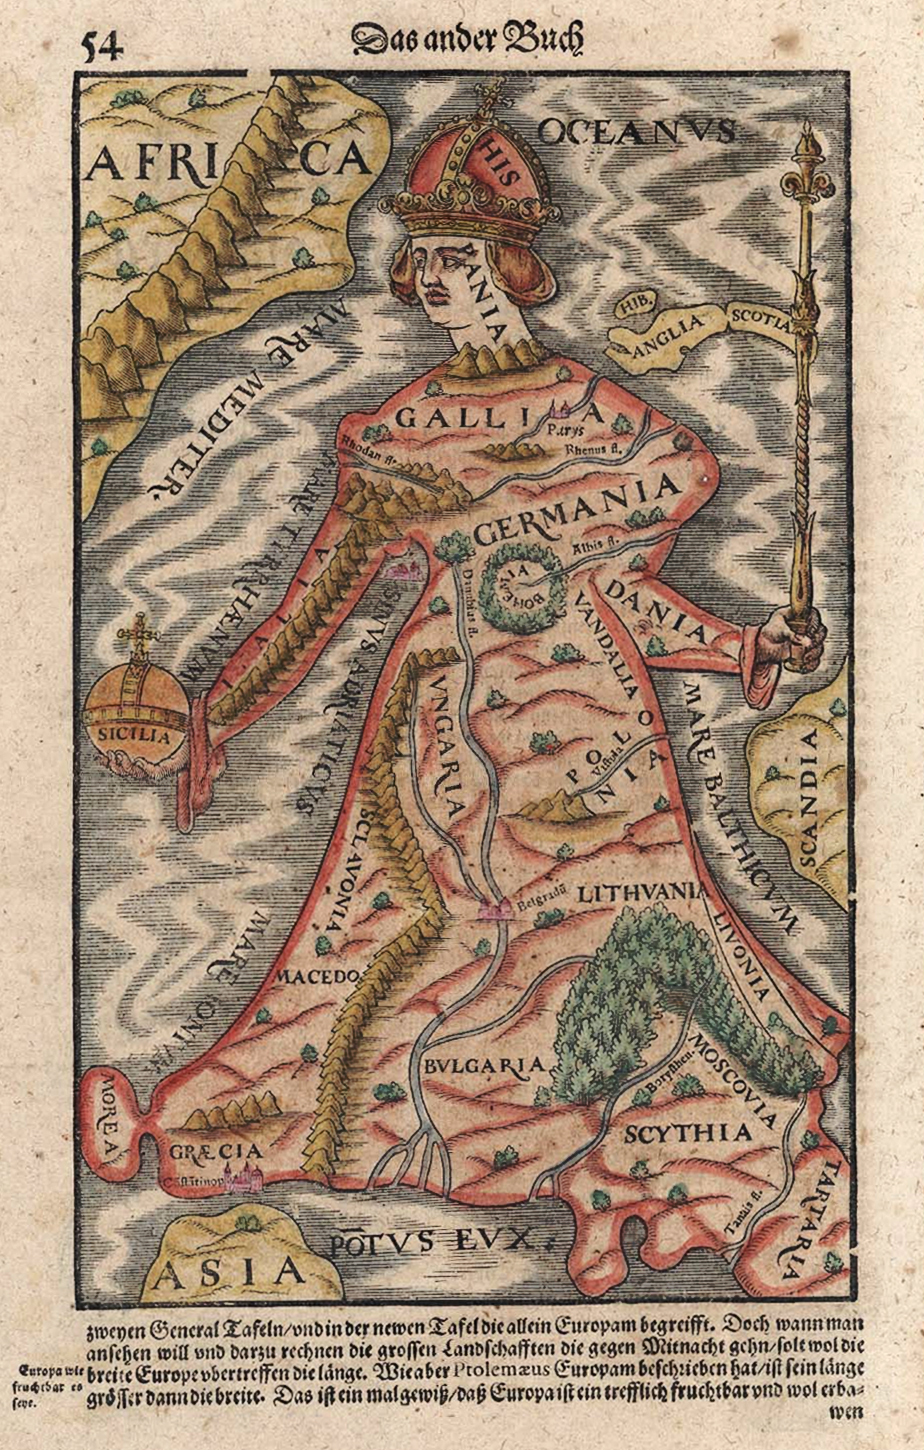 Europa regina, associated with a Habsburg-dominated Europe under Charles V.